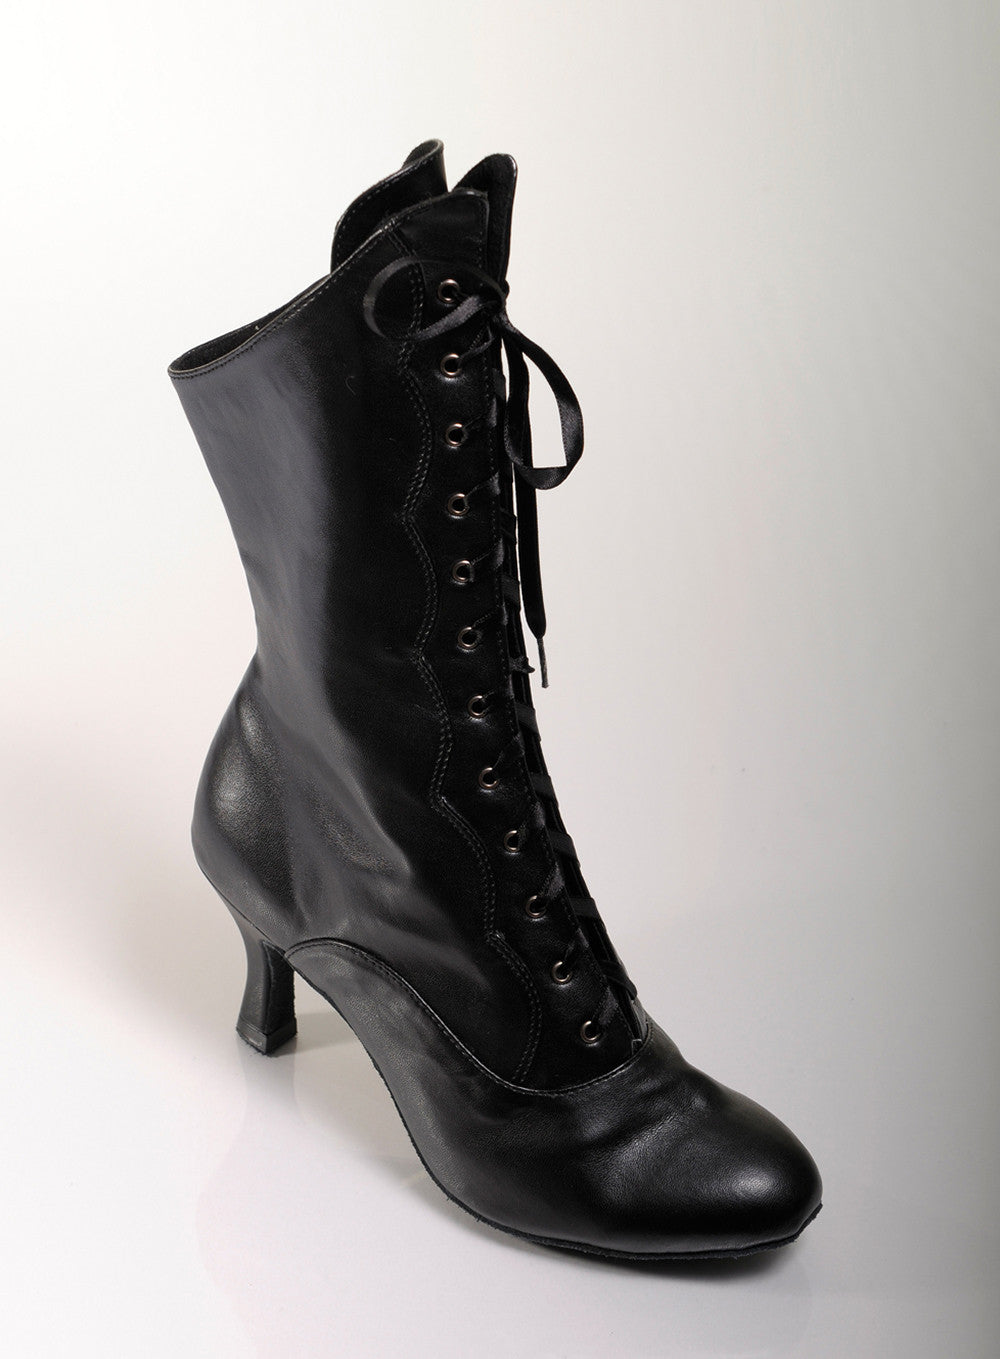 Black pleather PU dance boots low heel suede sole